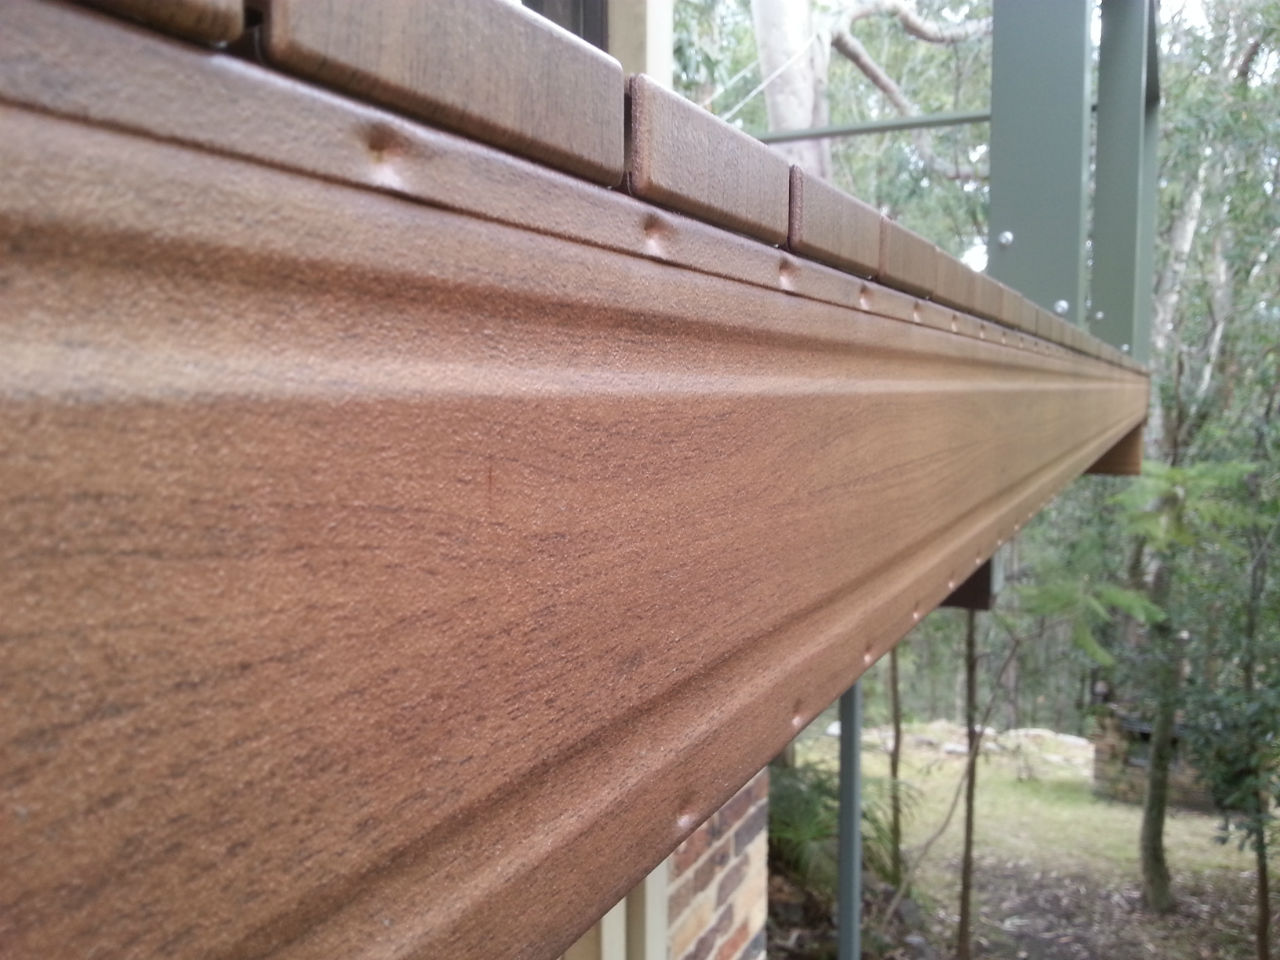 Timber finish to Boxspan bearer in a high bush fire danger area